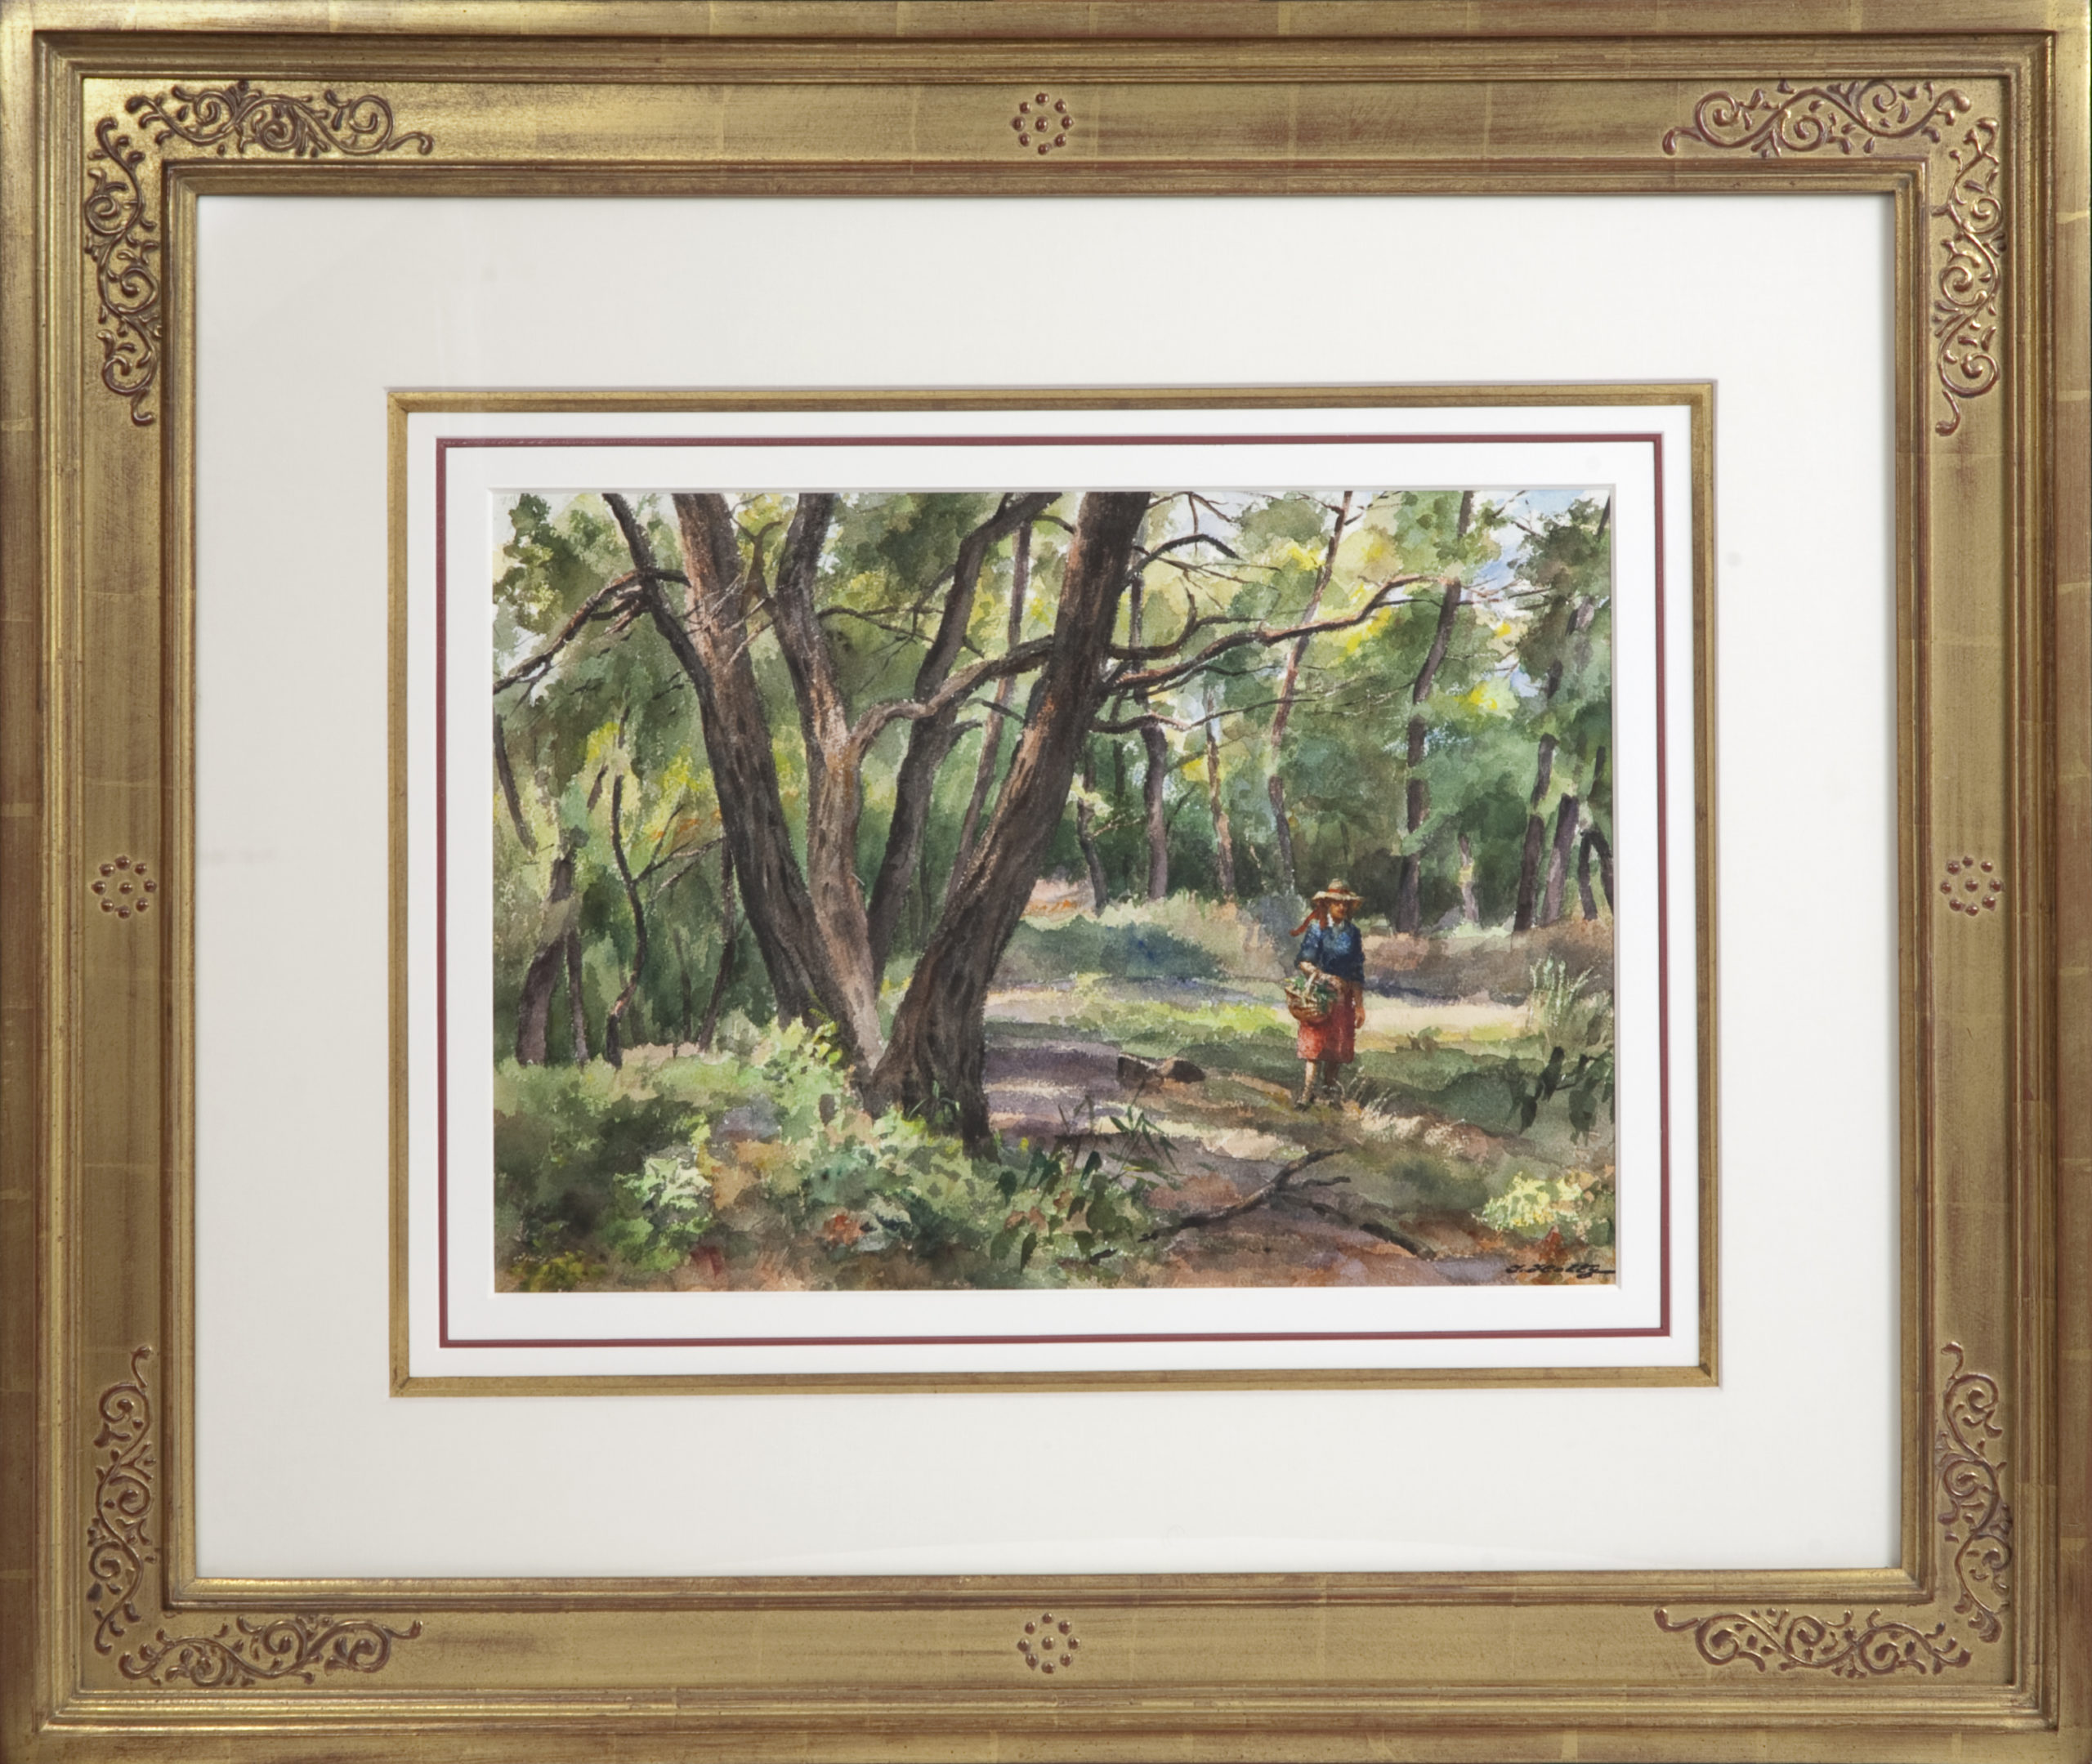 055 Walking in the Woods 1981 - Watercolor - 18.5 x 14 - Frame: 34.25 x 29 x 2